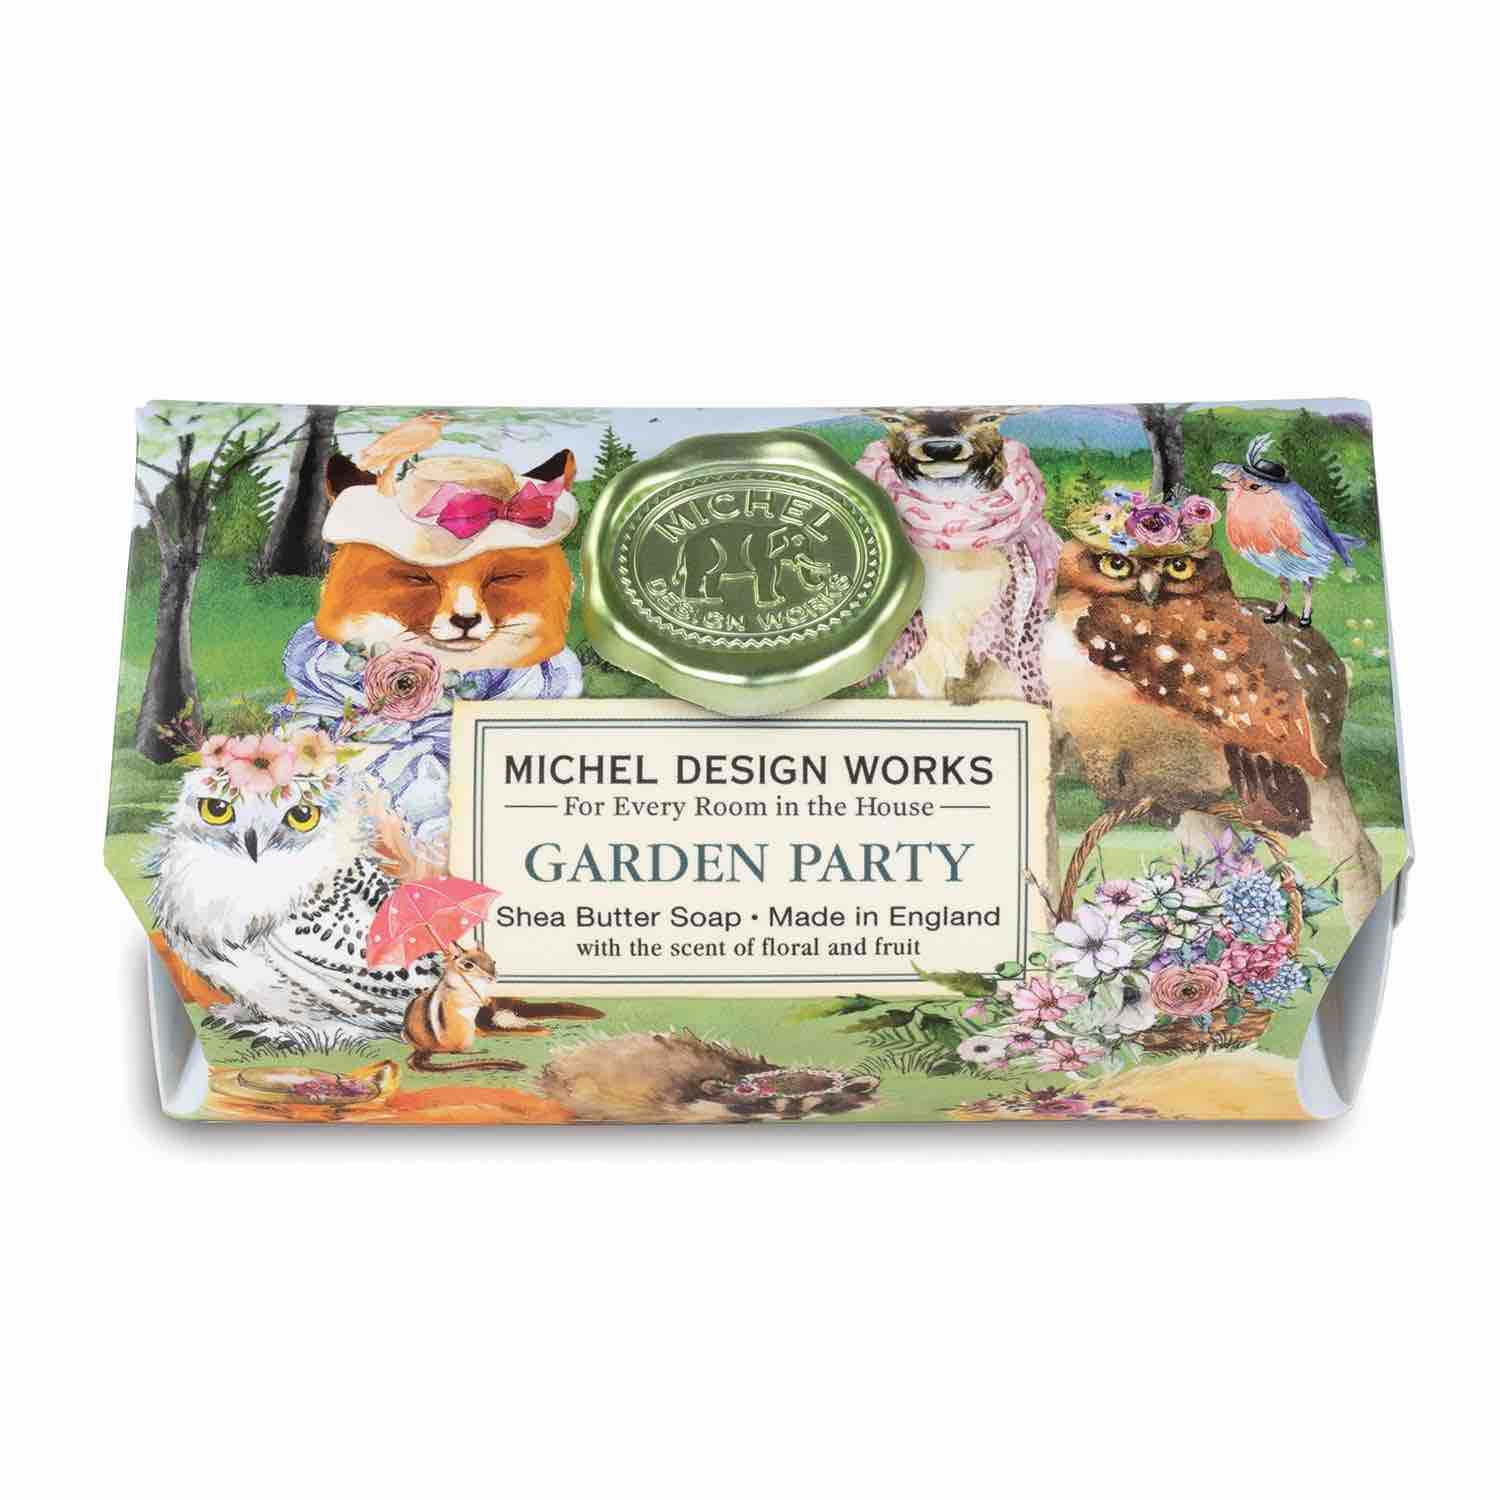 Michel Design Works Large Bath Soap Bar | Garden Party